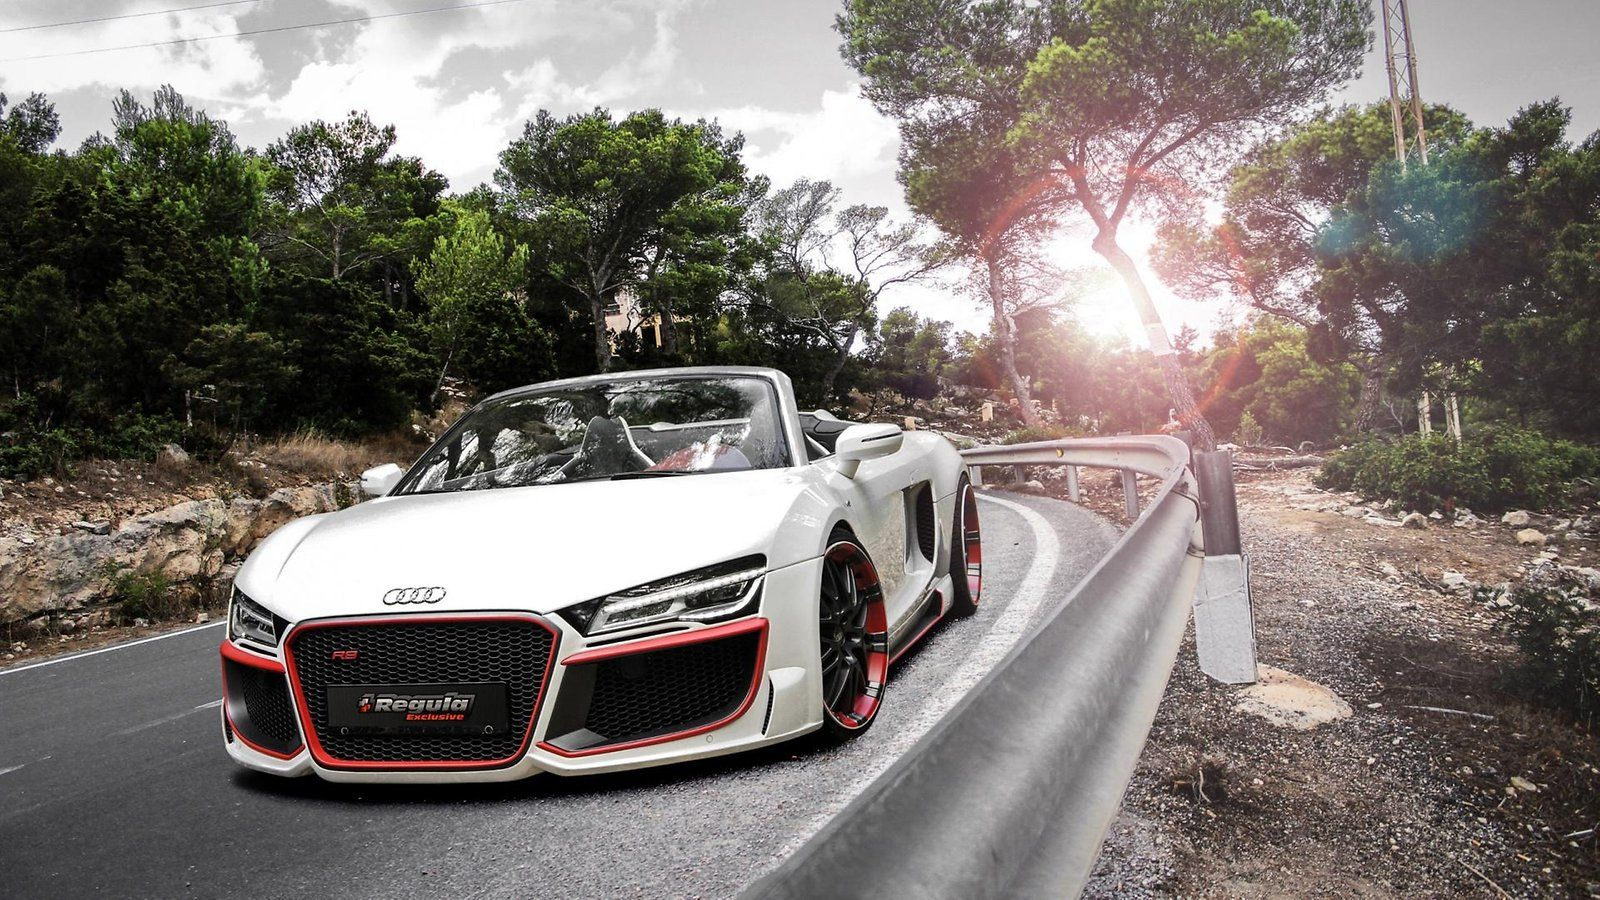 Audi R8 Spyder Convertible In A Great Way R Wallpapers Audi Audi R8 Spyder Audi R8 V10